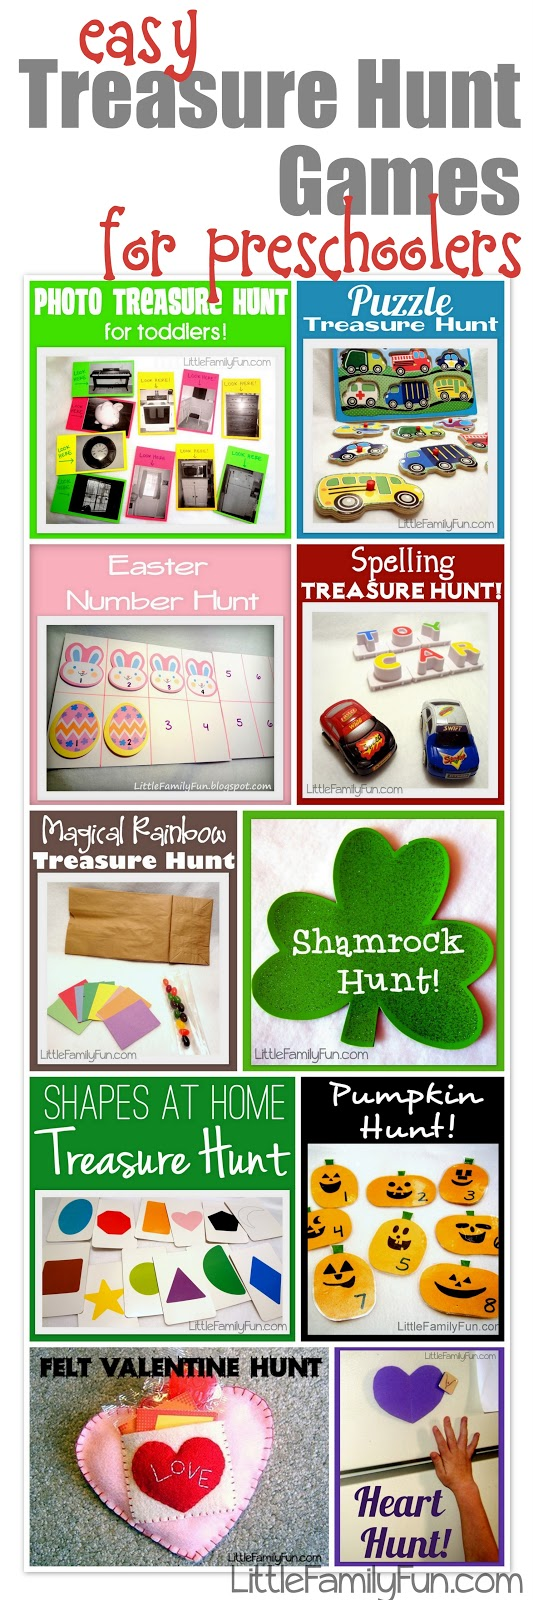 Treasure Hunt Family Games